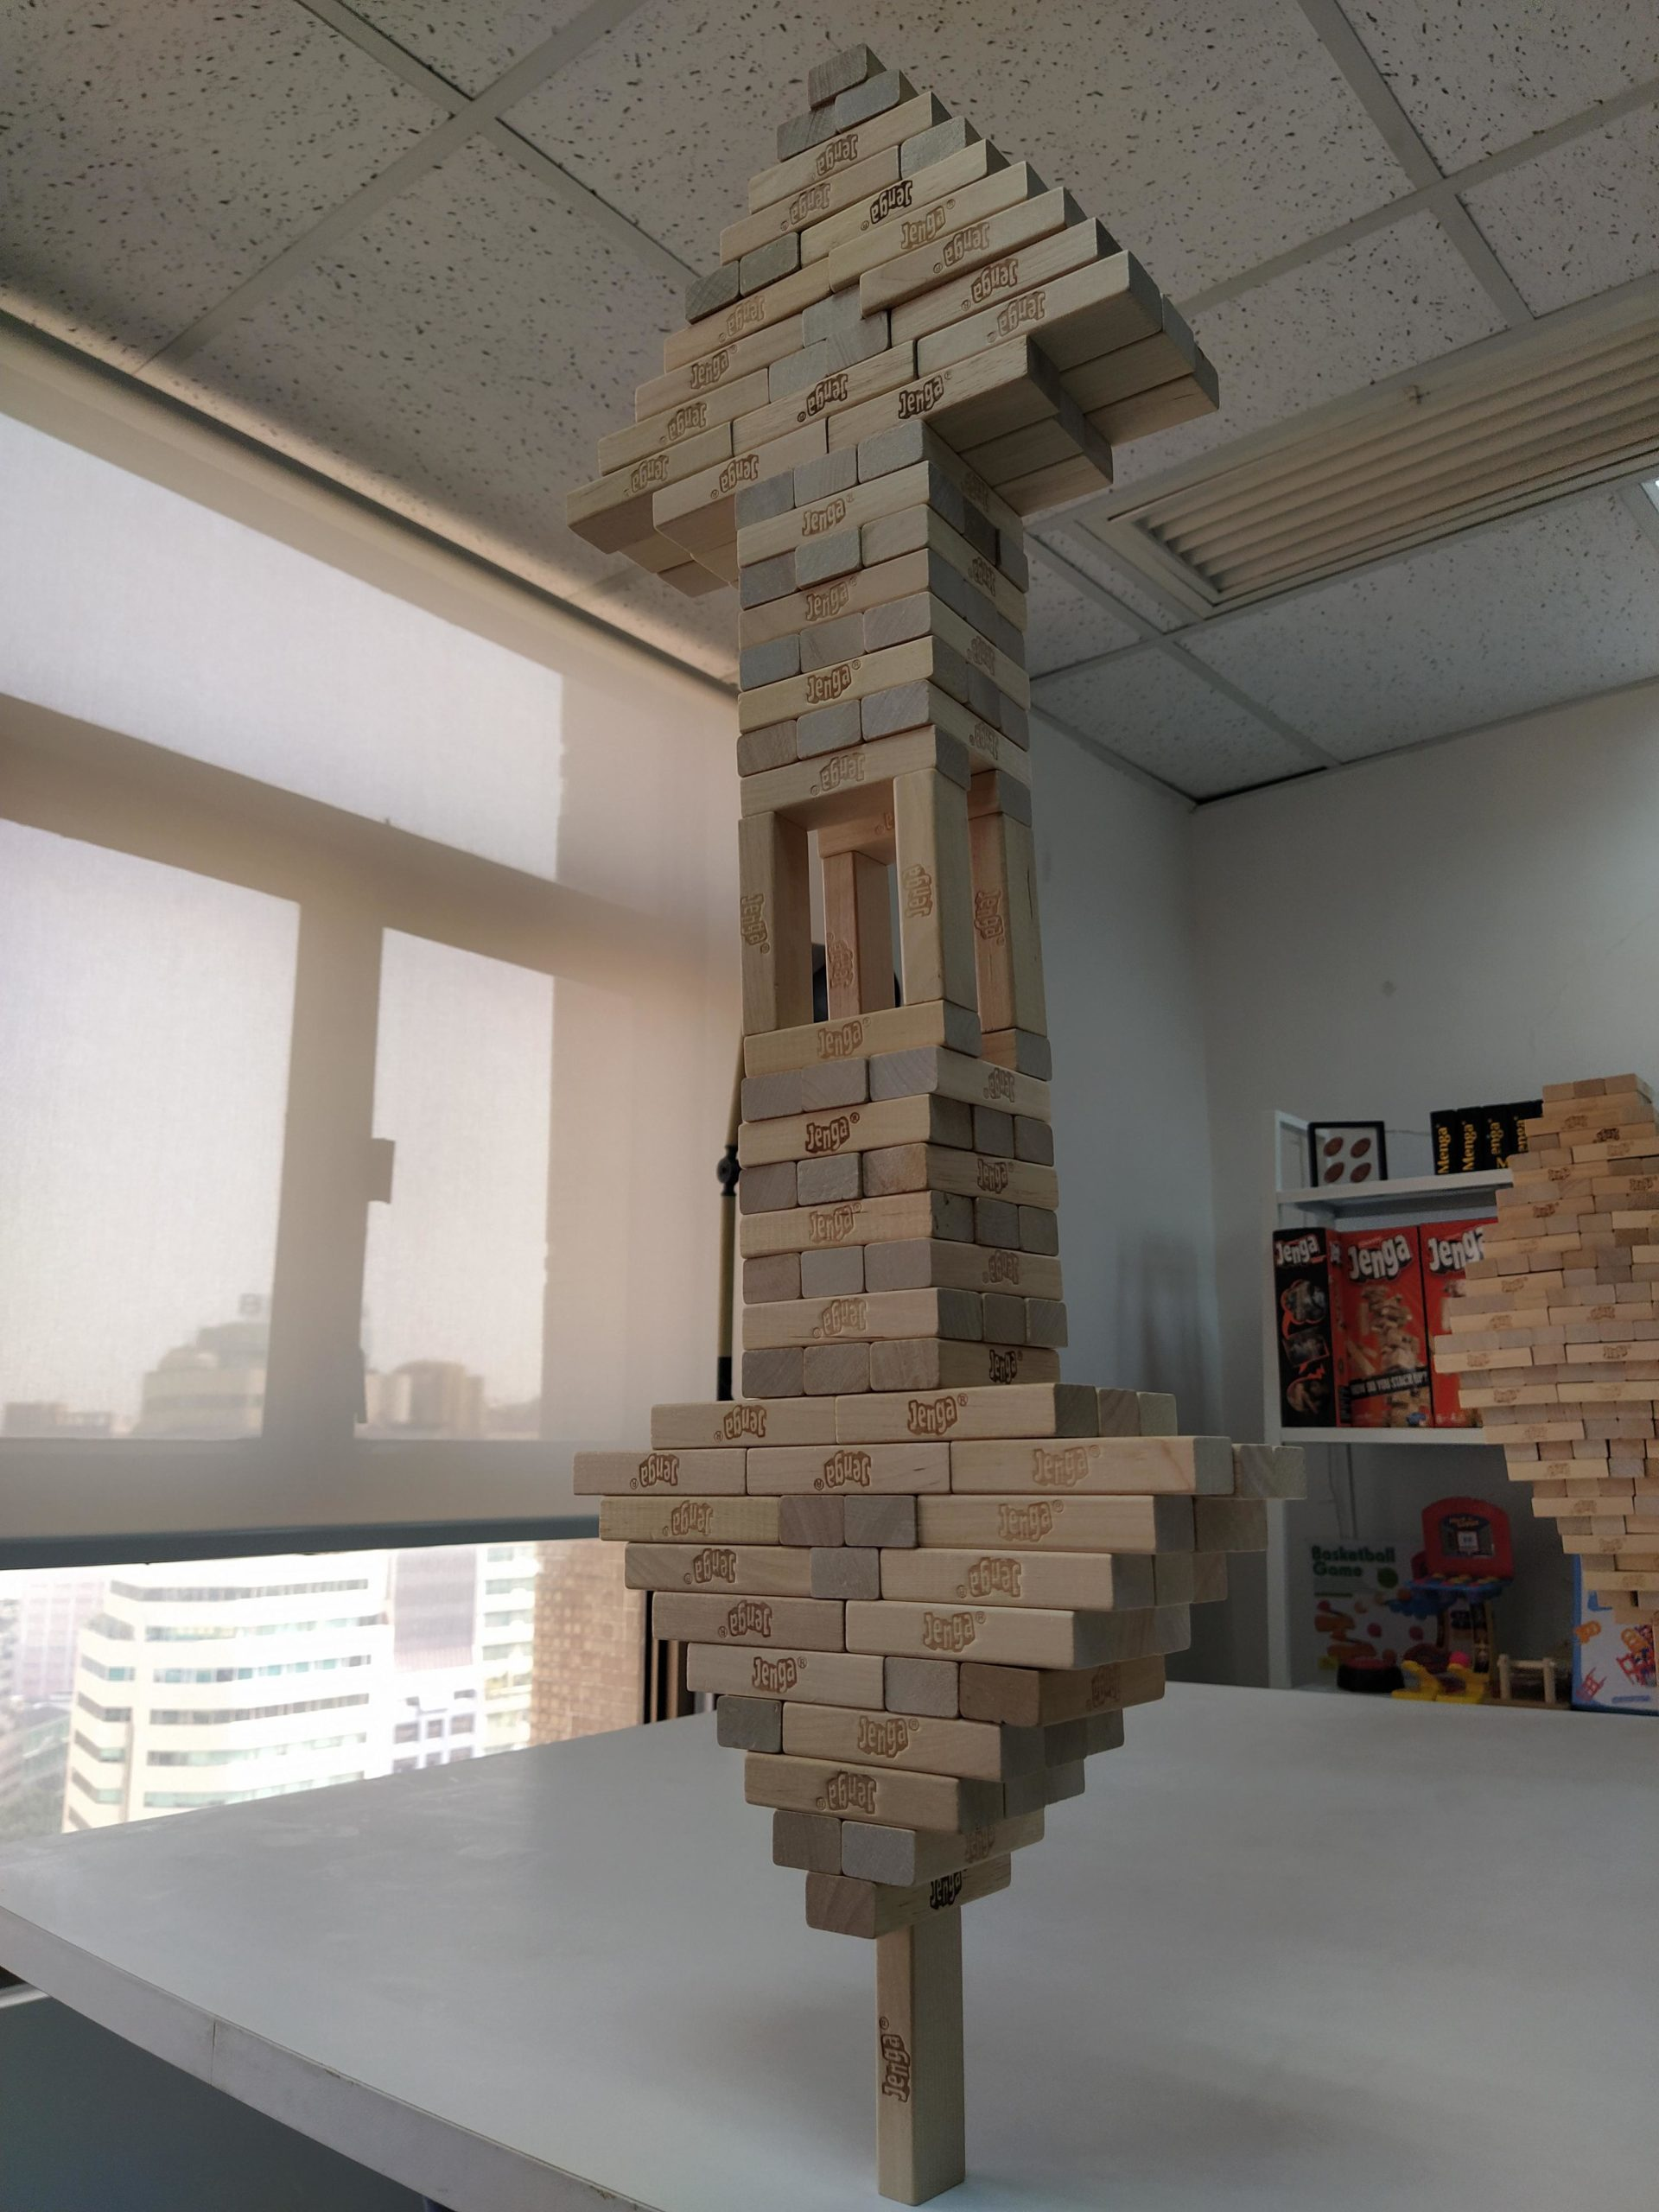 I made the upvote and downvote icon with Jenga blocks